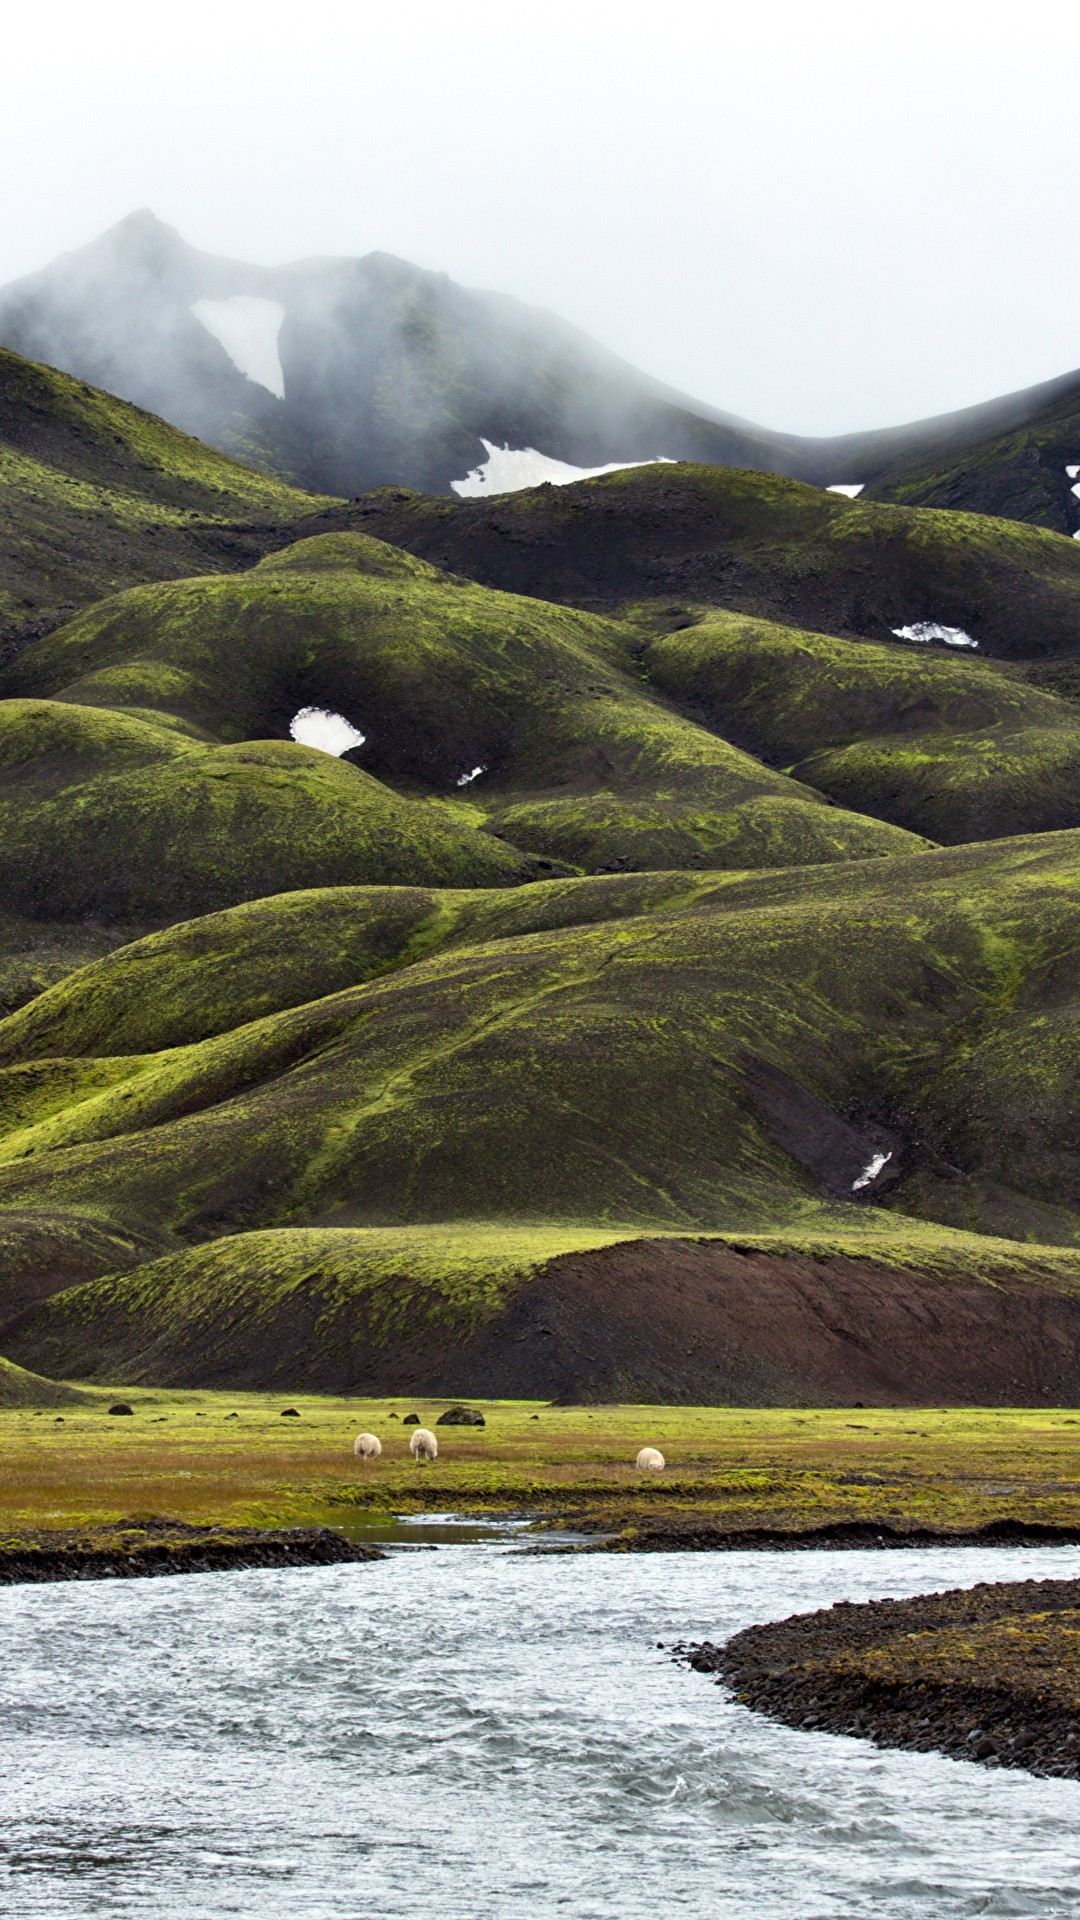 Iceland iphone home screen wallpaper